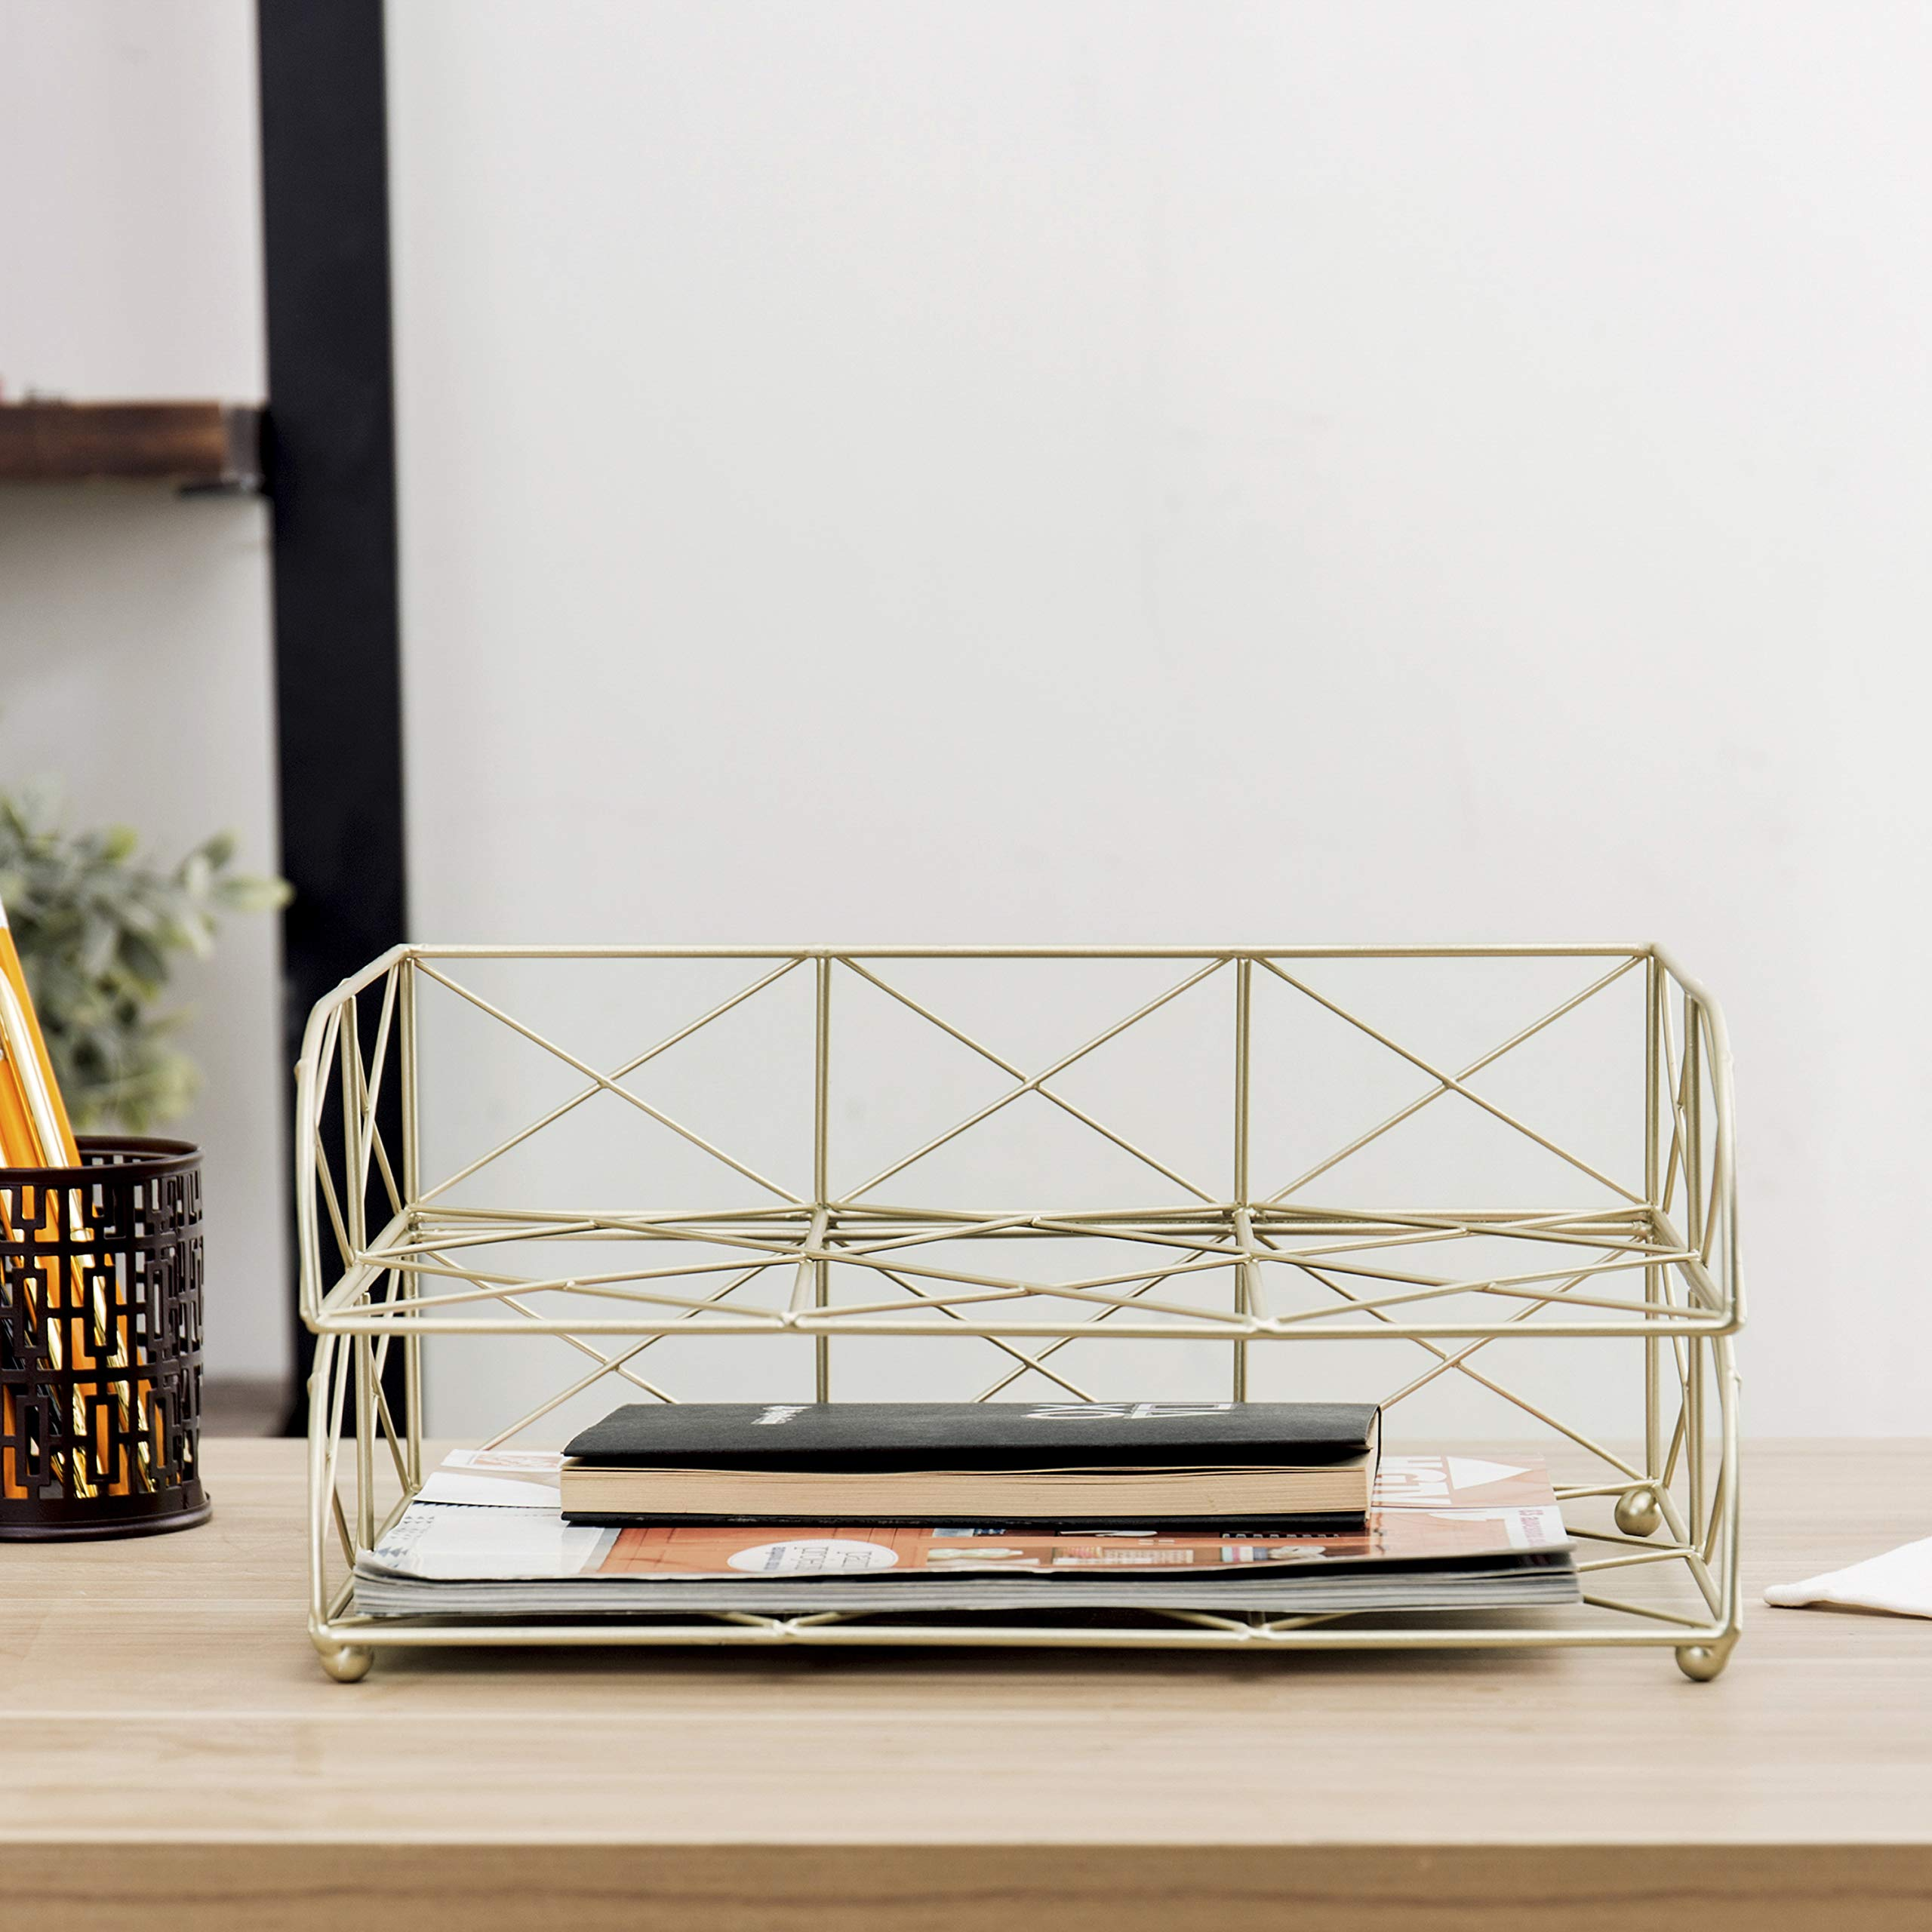 MyGift 2-Tier Geometric Light Gold-Tone Metal Desktop Stacked Letter Tray by MyGift (Image #4)